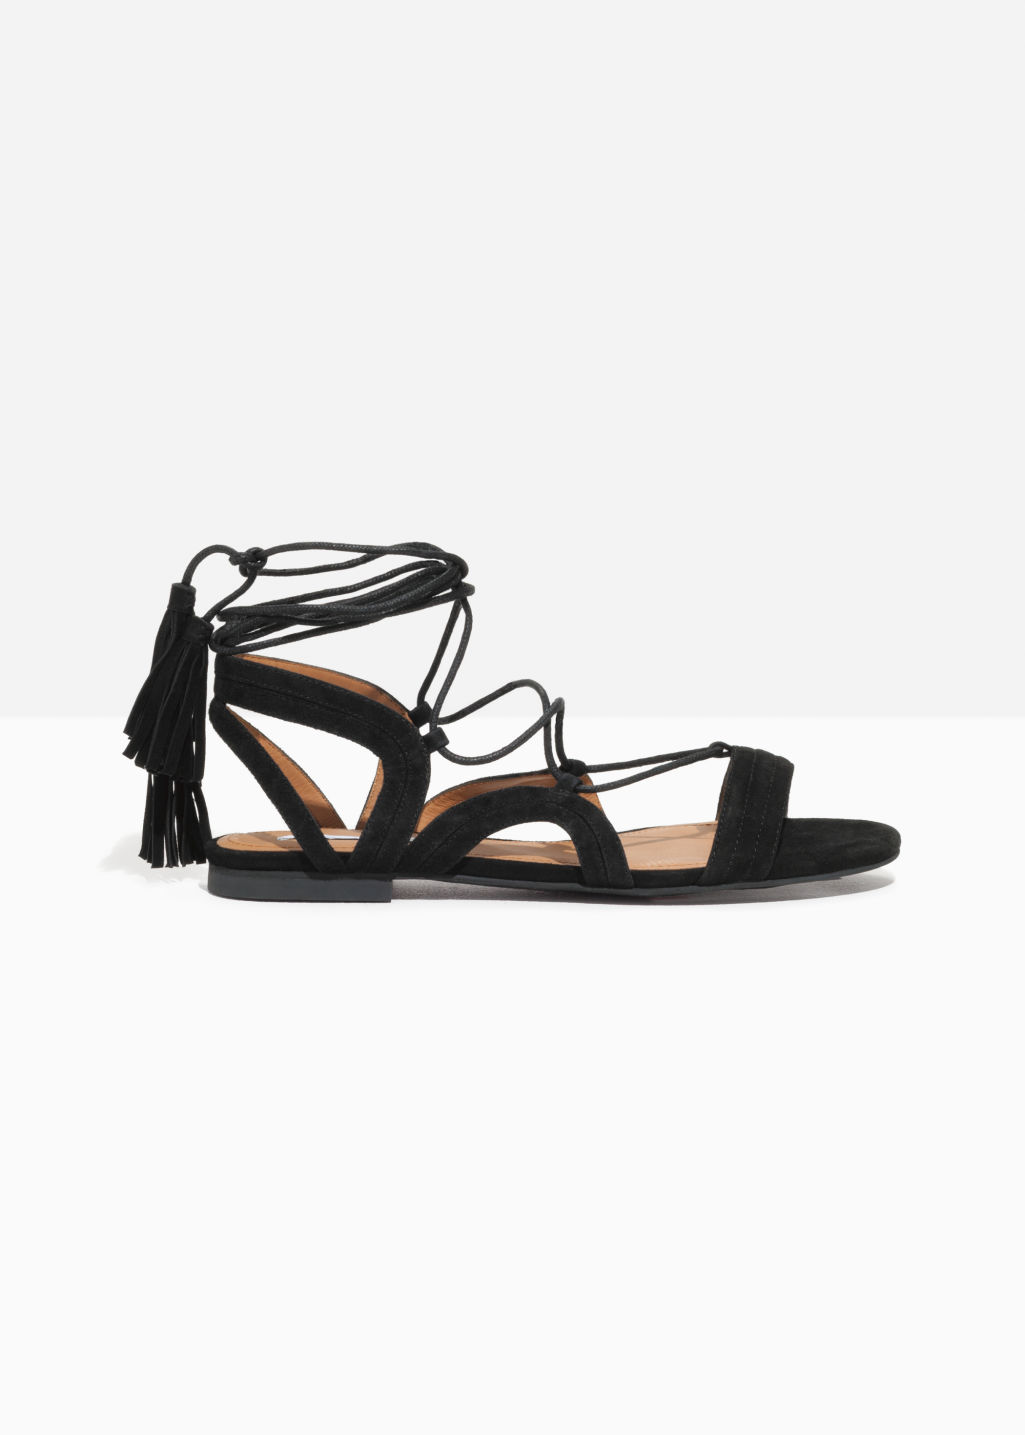 & OTHER STORIES Suede Lace Up Tassel Sandal mhNxX